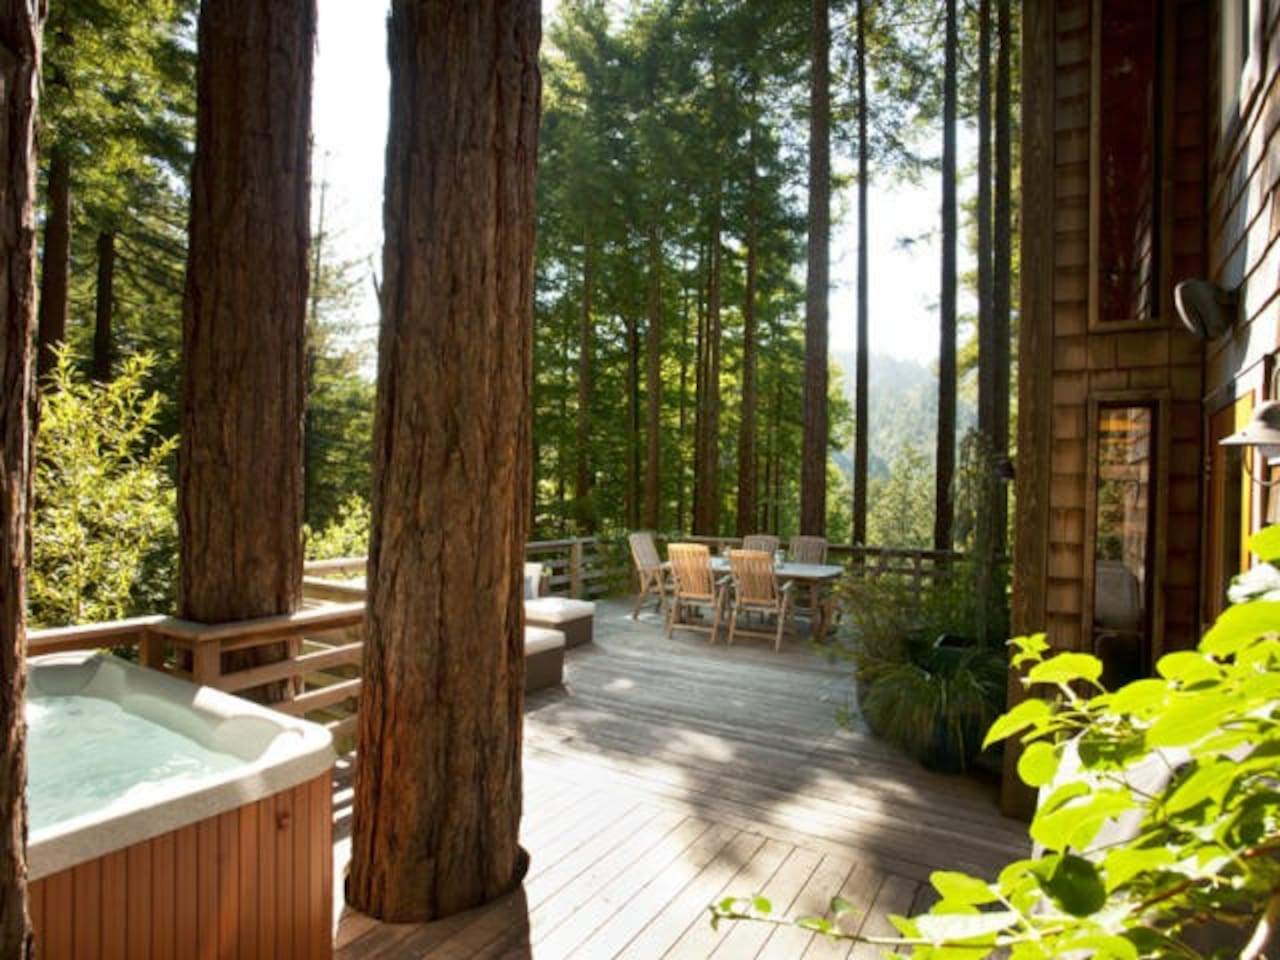 Hot tub, deck, redwoods, view of the russian river valley...ahhh